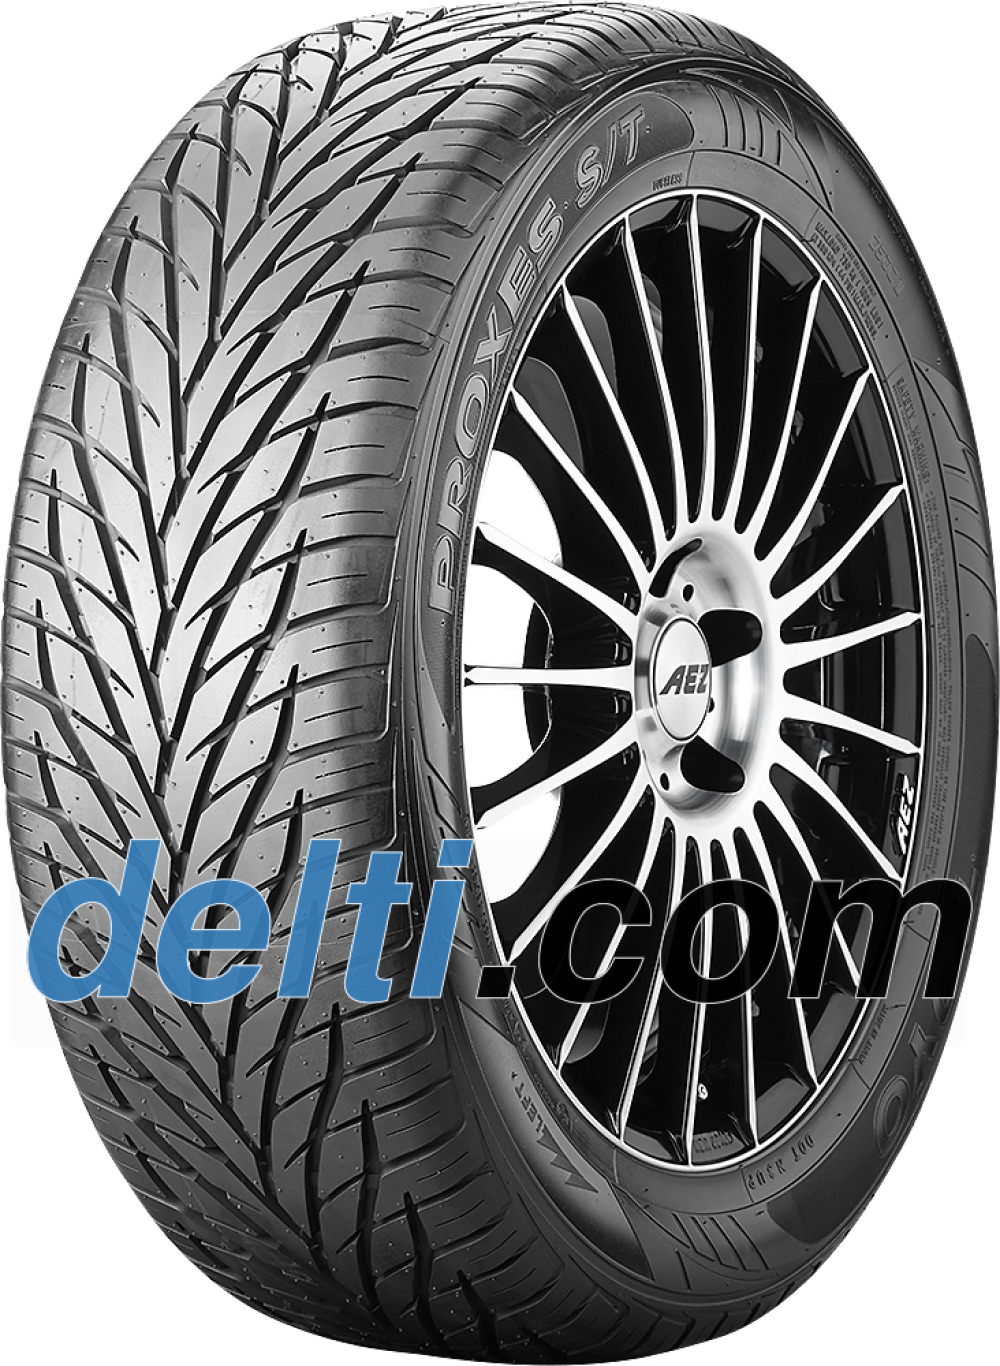 Toyo Proxes S/T ( 295/30 R22 103Y RF RBL )